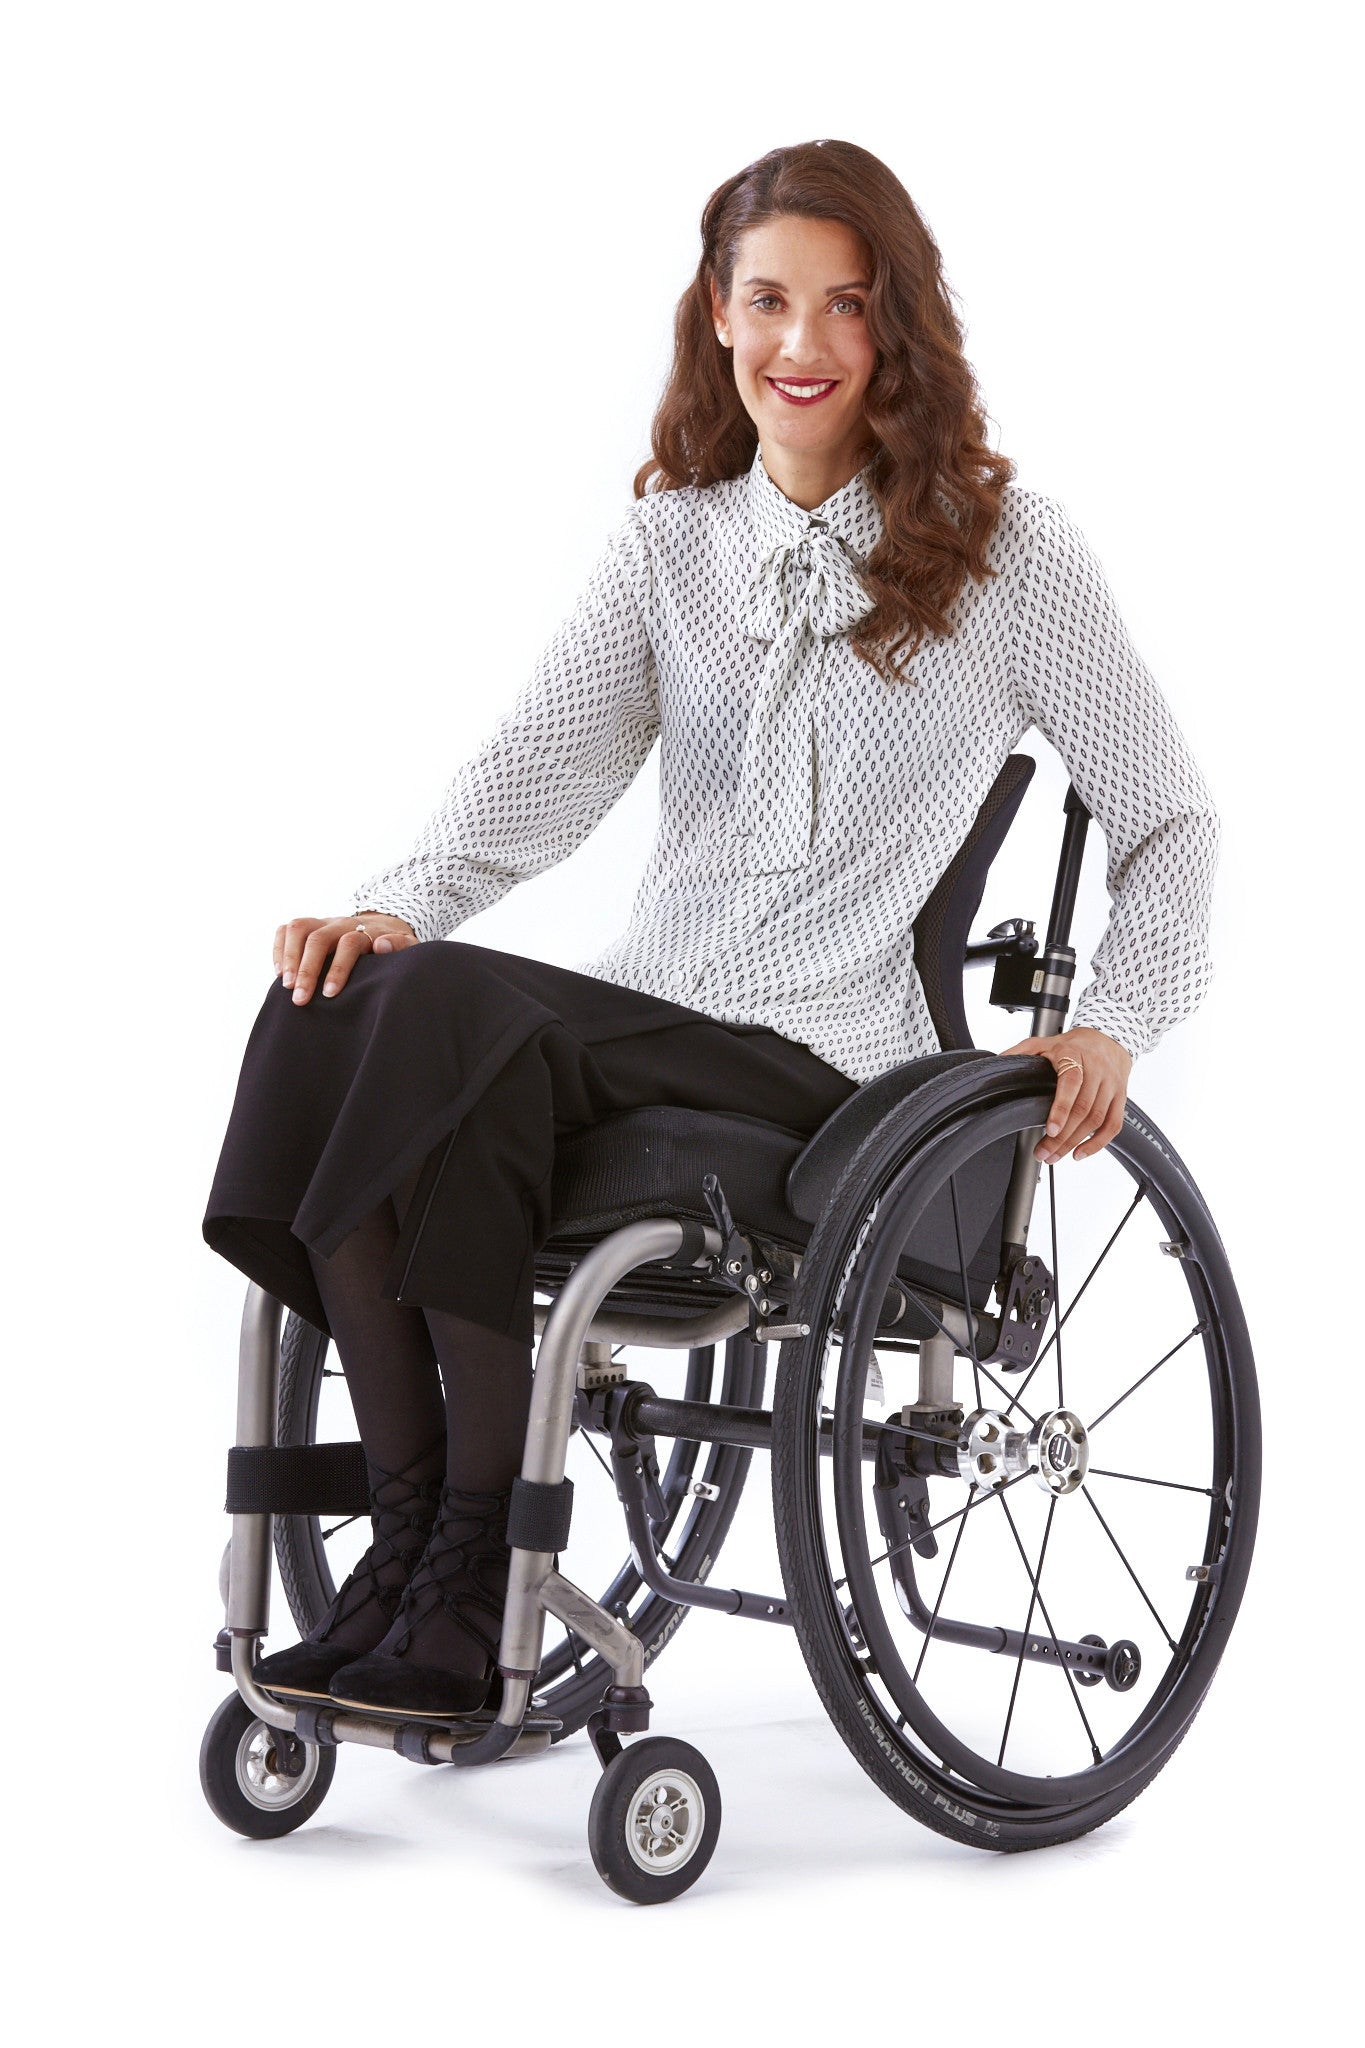 Wrap Skirt - Hot new adaptive fashion for wheelchair users